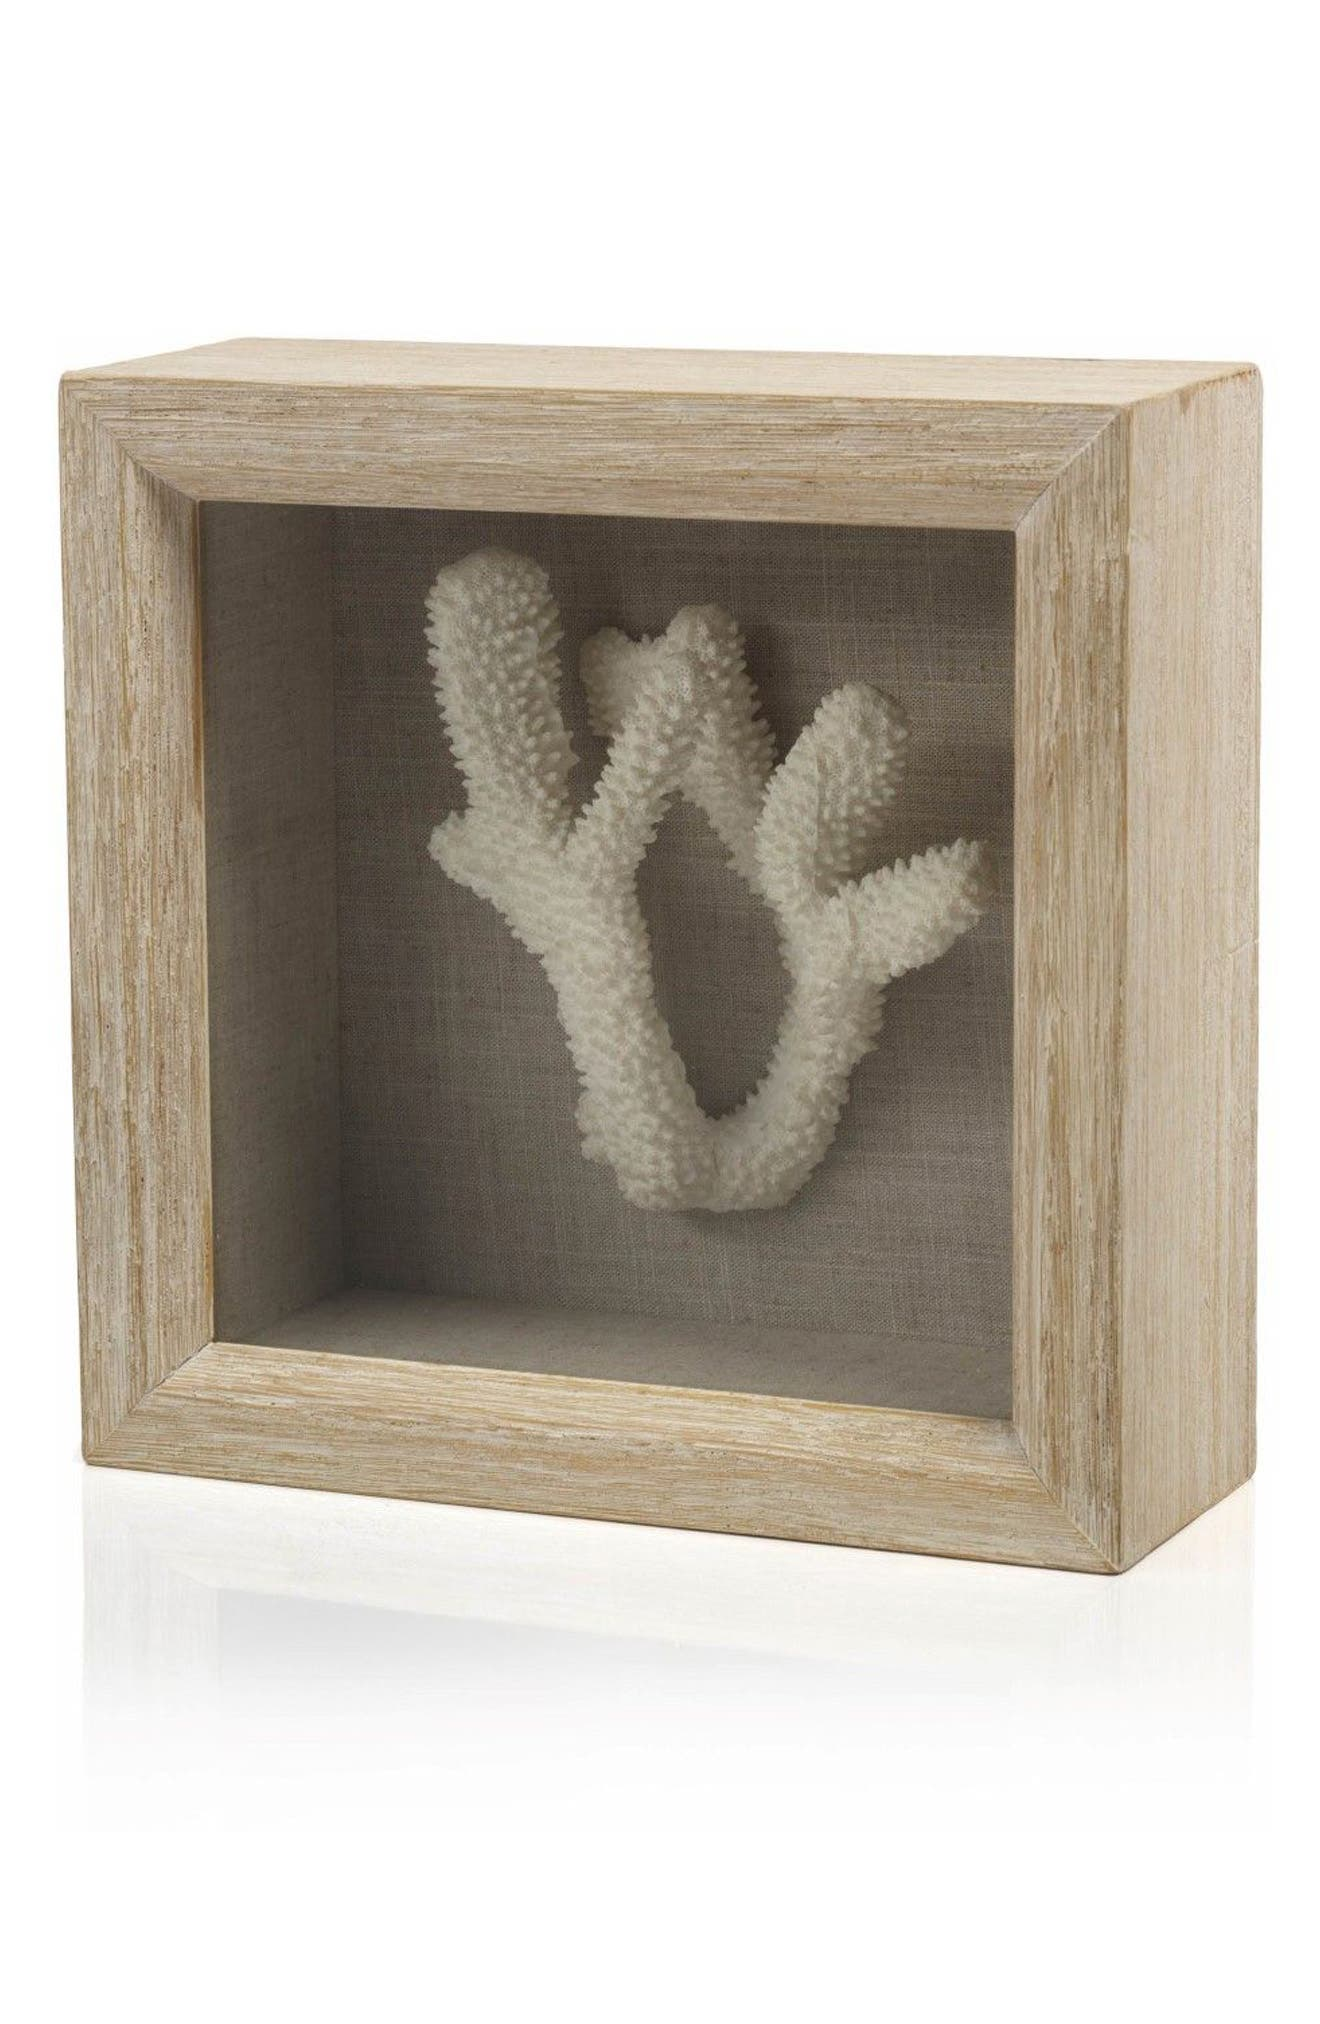 Staghorn Coral Shadow Box Art,                         Main,                         color, Off-White/ Brown/ Beige